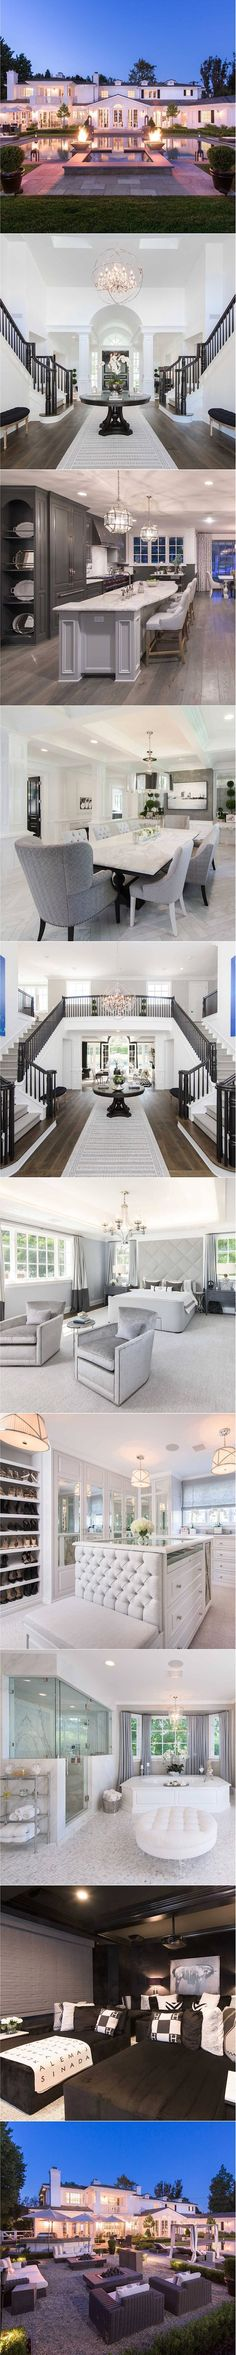 Rarely does a signature property offer the privilege of opportunity. Polished with confidence and a classic balance of modern and time-honored tradition, this unprecedented estate features beautifully layered rooms specifically built for a unique personality and demanding lifestyle. A true celebration of modern refinement, this reimagined achievement leaves no detail unaffected. Spanning nearly 9,000 square […]